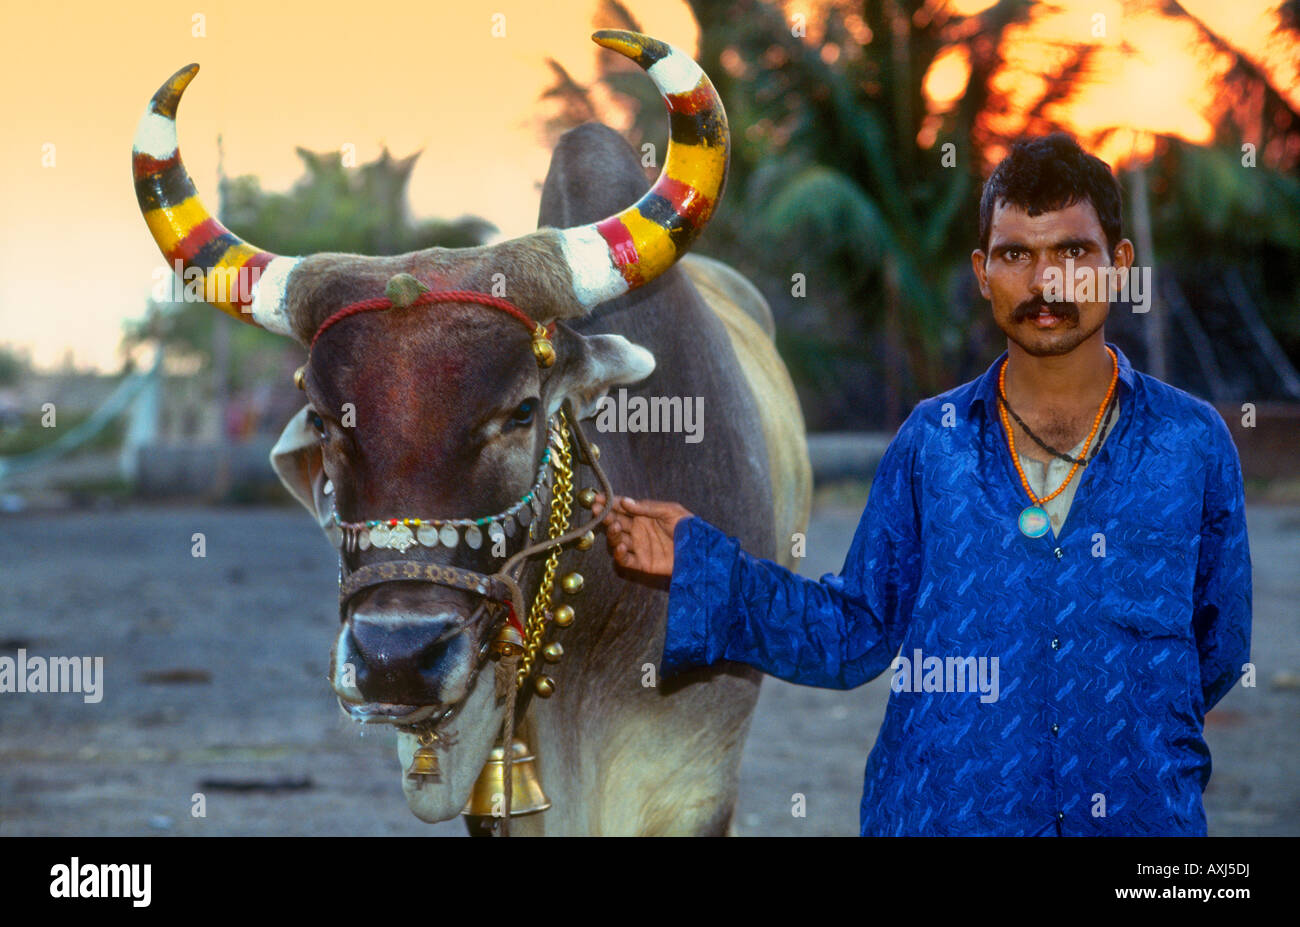 Hindu Man With Painted And Decorated Sacred Cow India